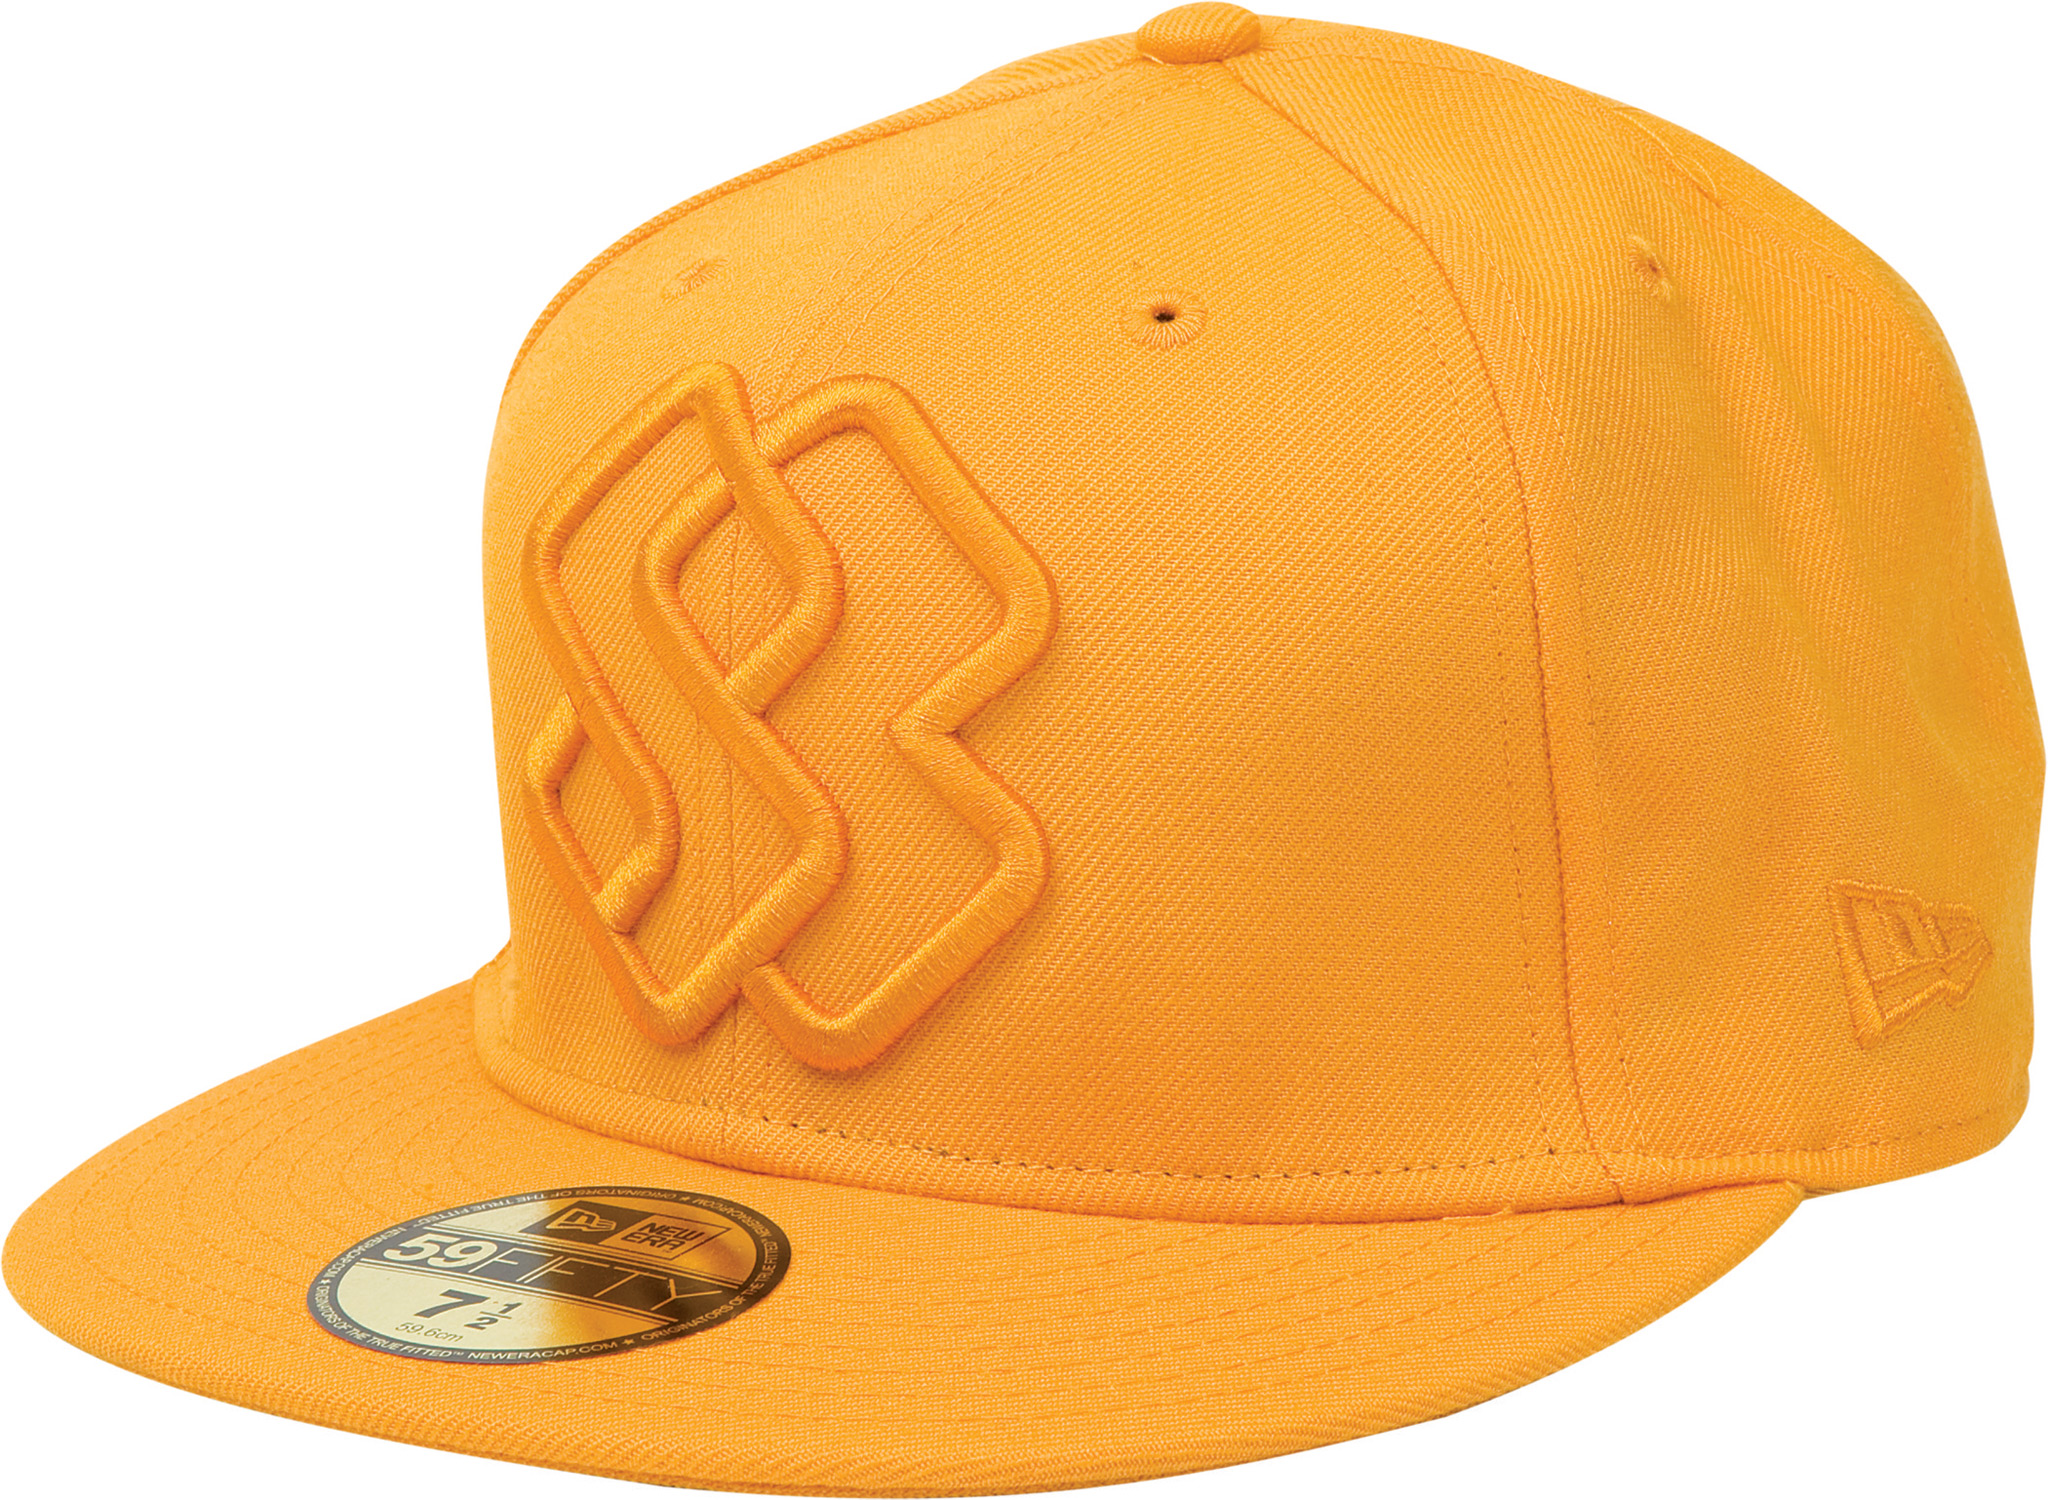 Sport this bold cap with style. Special Blend Lego New Era Cap offers a style of simplicity with one solid color and one bold logo embroidered front and center. With a touch of modernism, it's simple to go with everything. It's made of 100% wool providing a thicker feel in comparison to the ordinary cap. Rock this cap out with confidence on a day out with friends whether it's to the park, ball game, or to the beach. Wear it all season long and it's sure to last a long time.Key Features of The Special Blend Lego New Era Cap: 3d embroidery 59/50 100% wool - $16.95